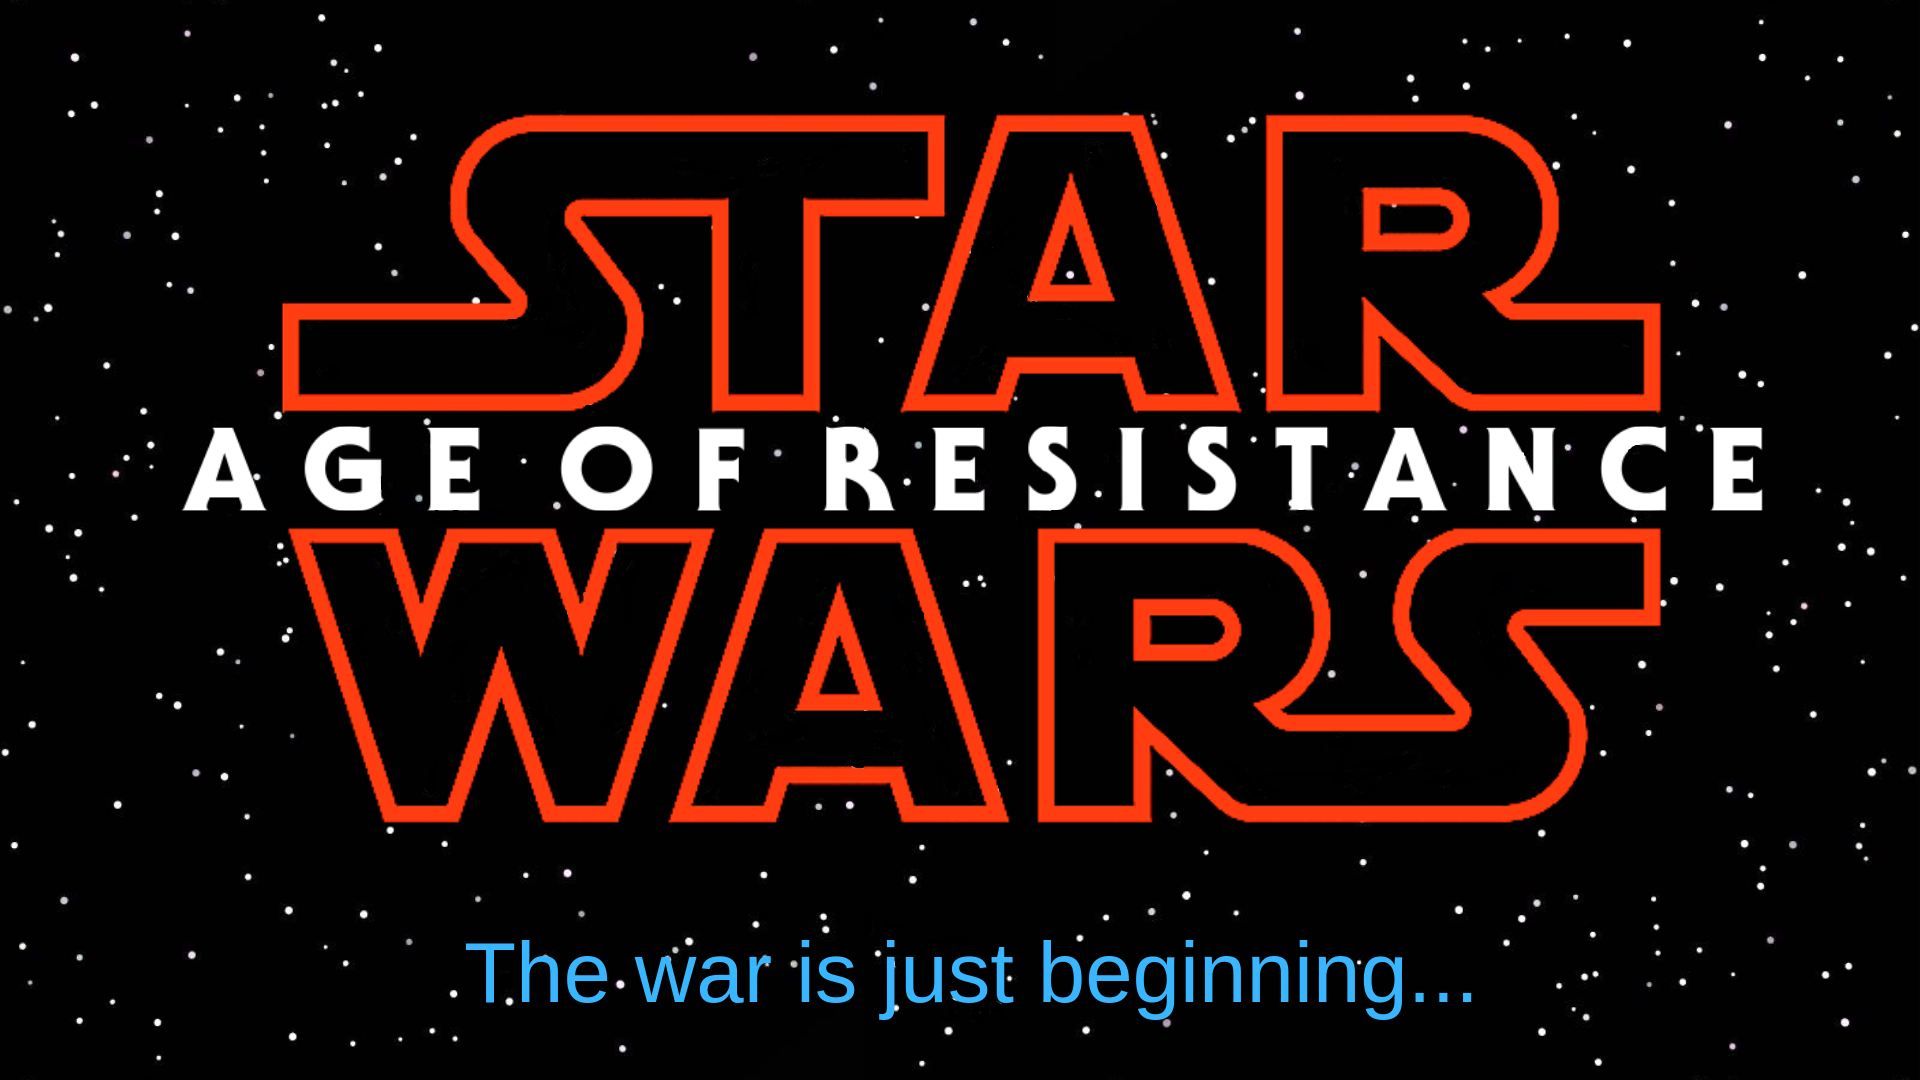 Star Wars: Age of Resistance | Edge, Age, Force, etc  Wiki